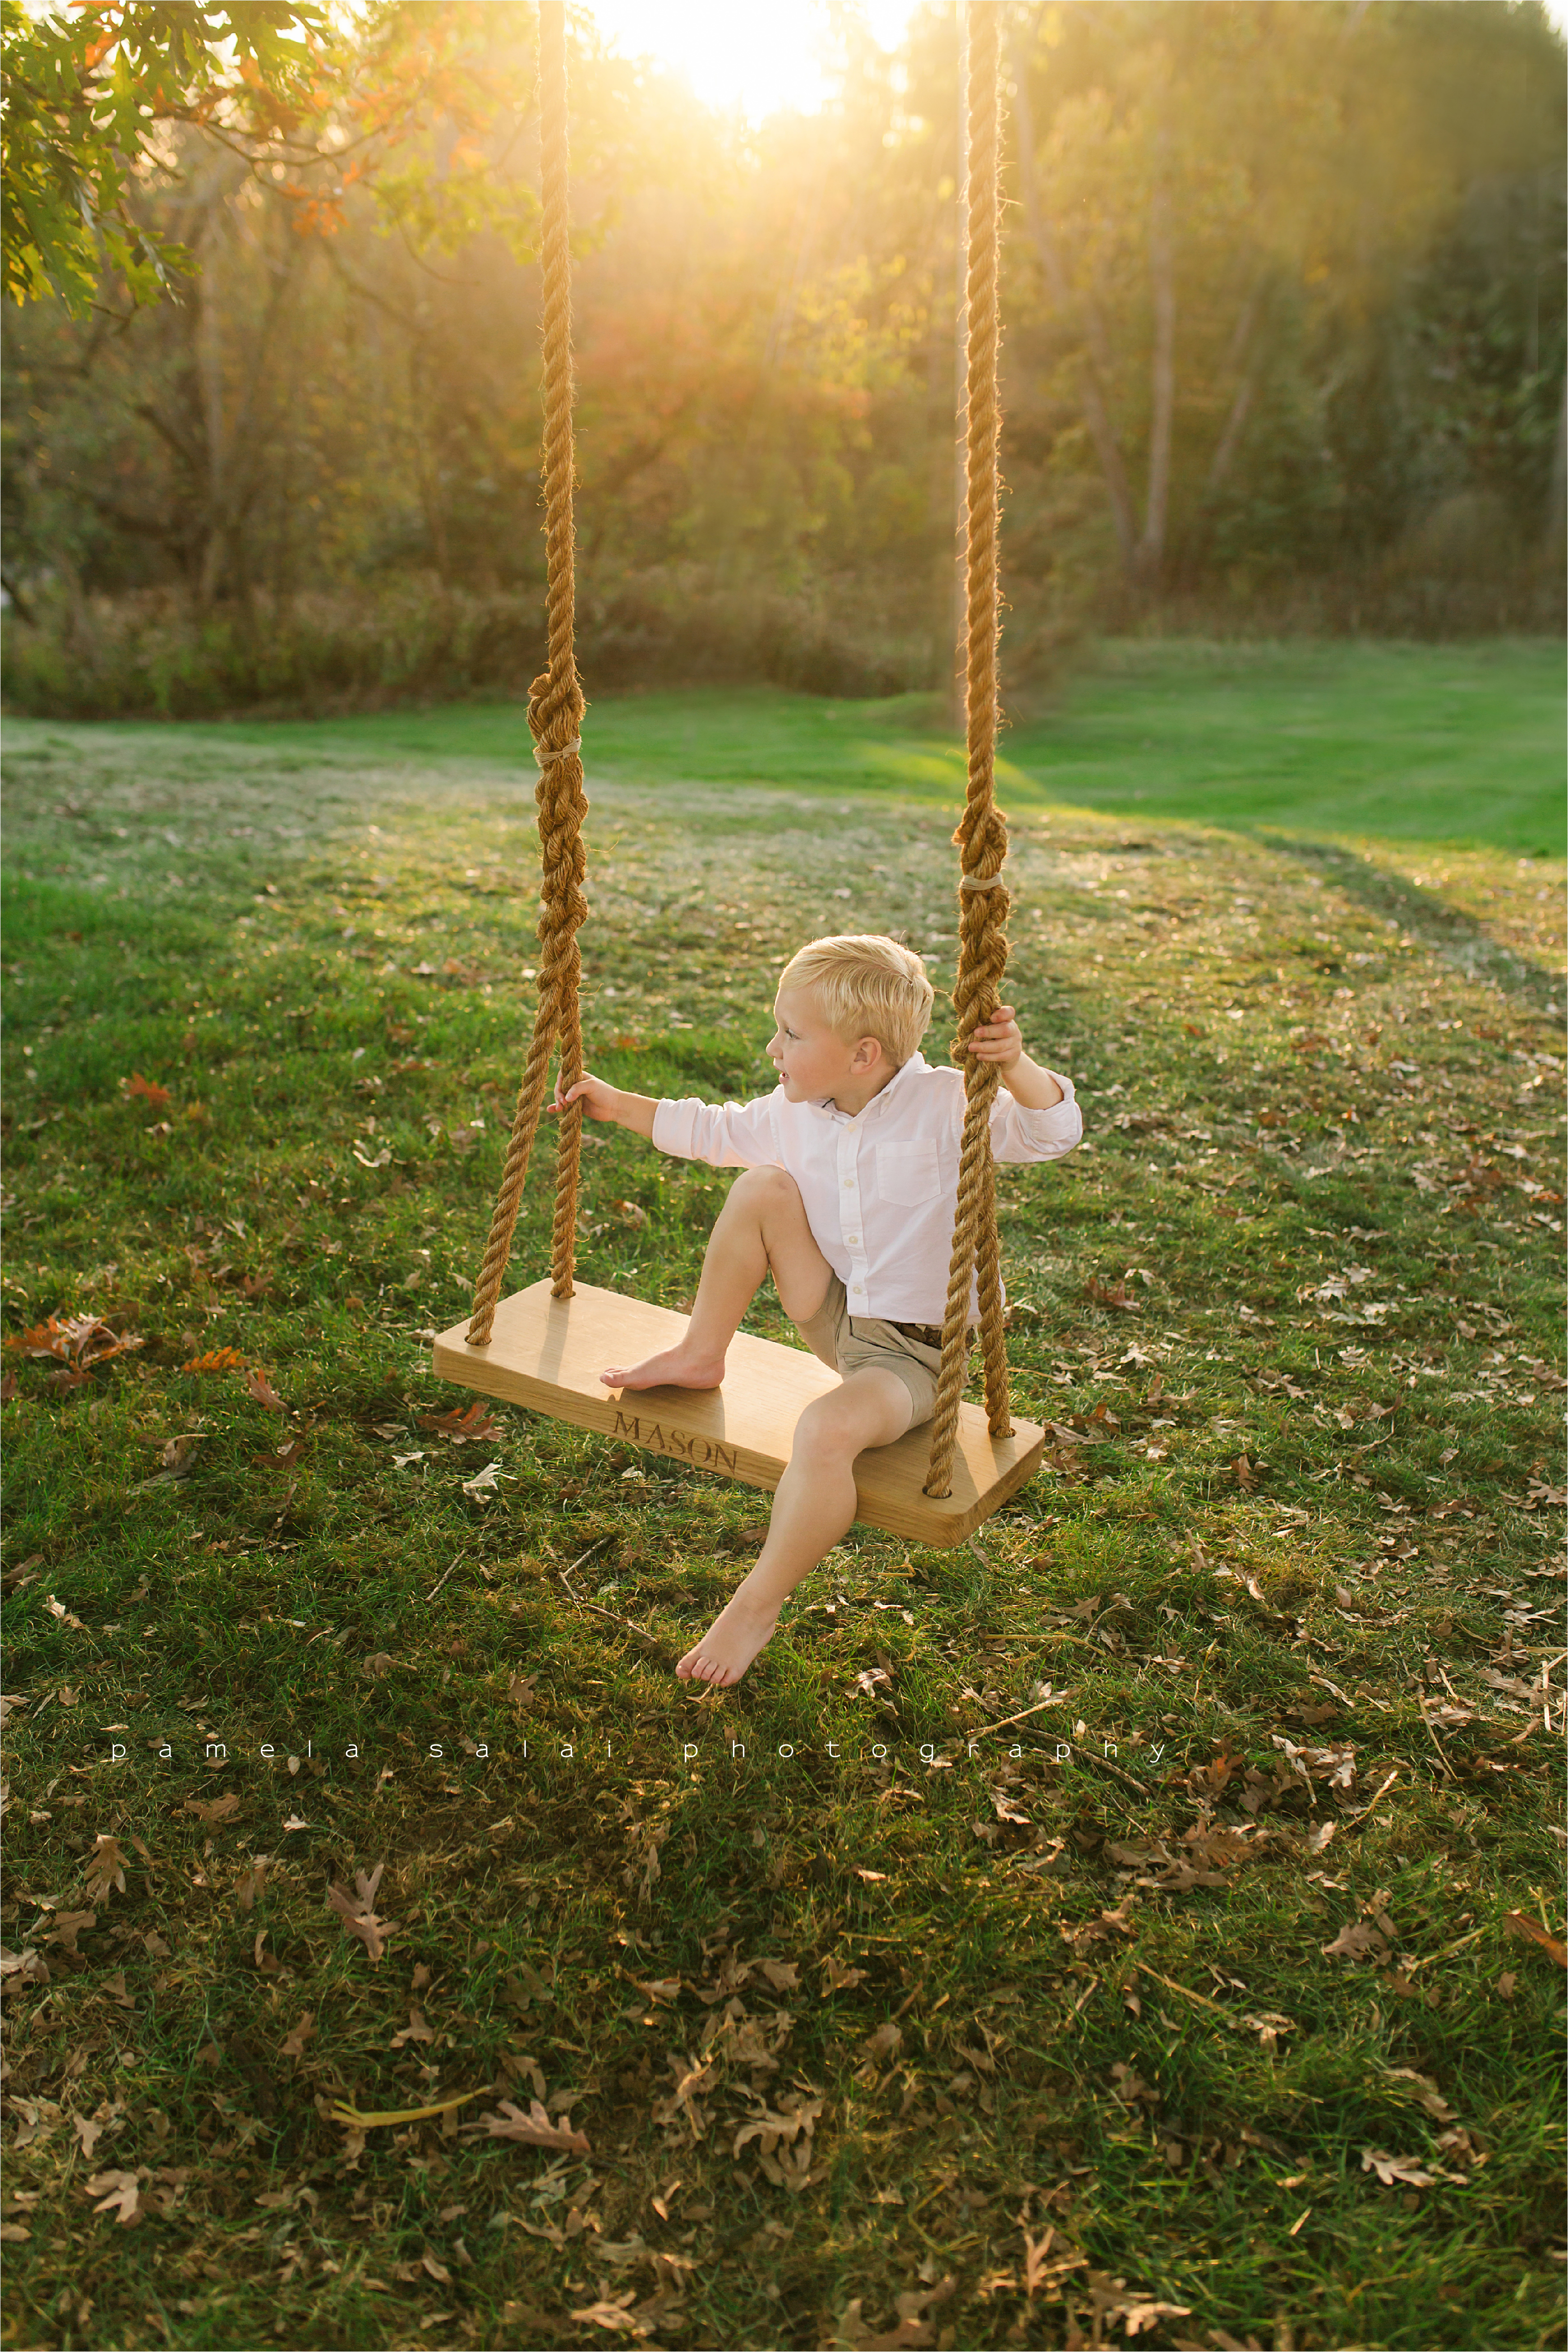 Backlit, golden hour, pittsburgh, film look, north park , boy on swing, family